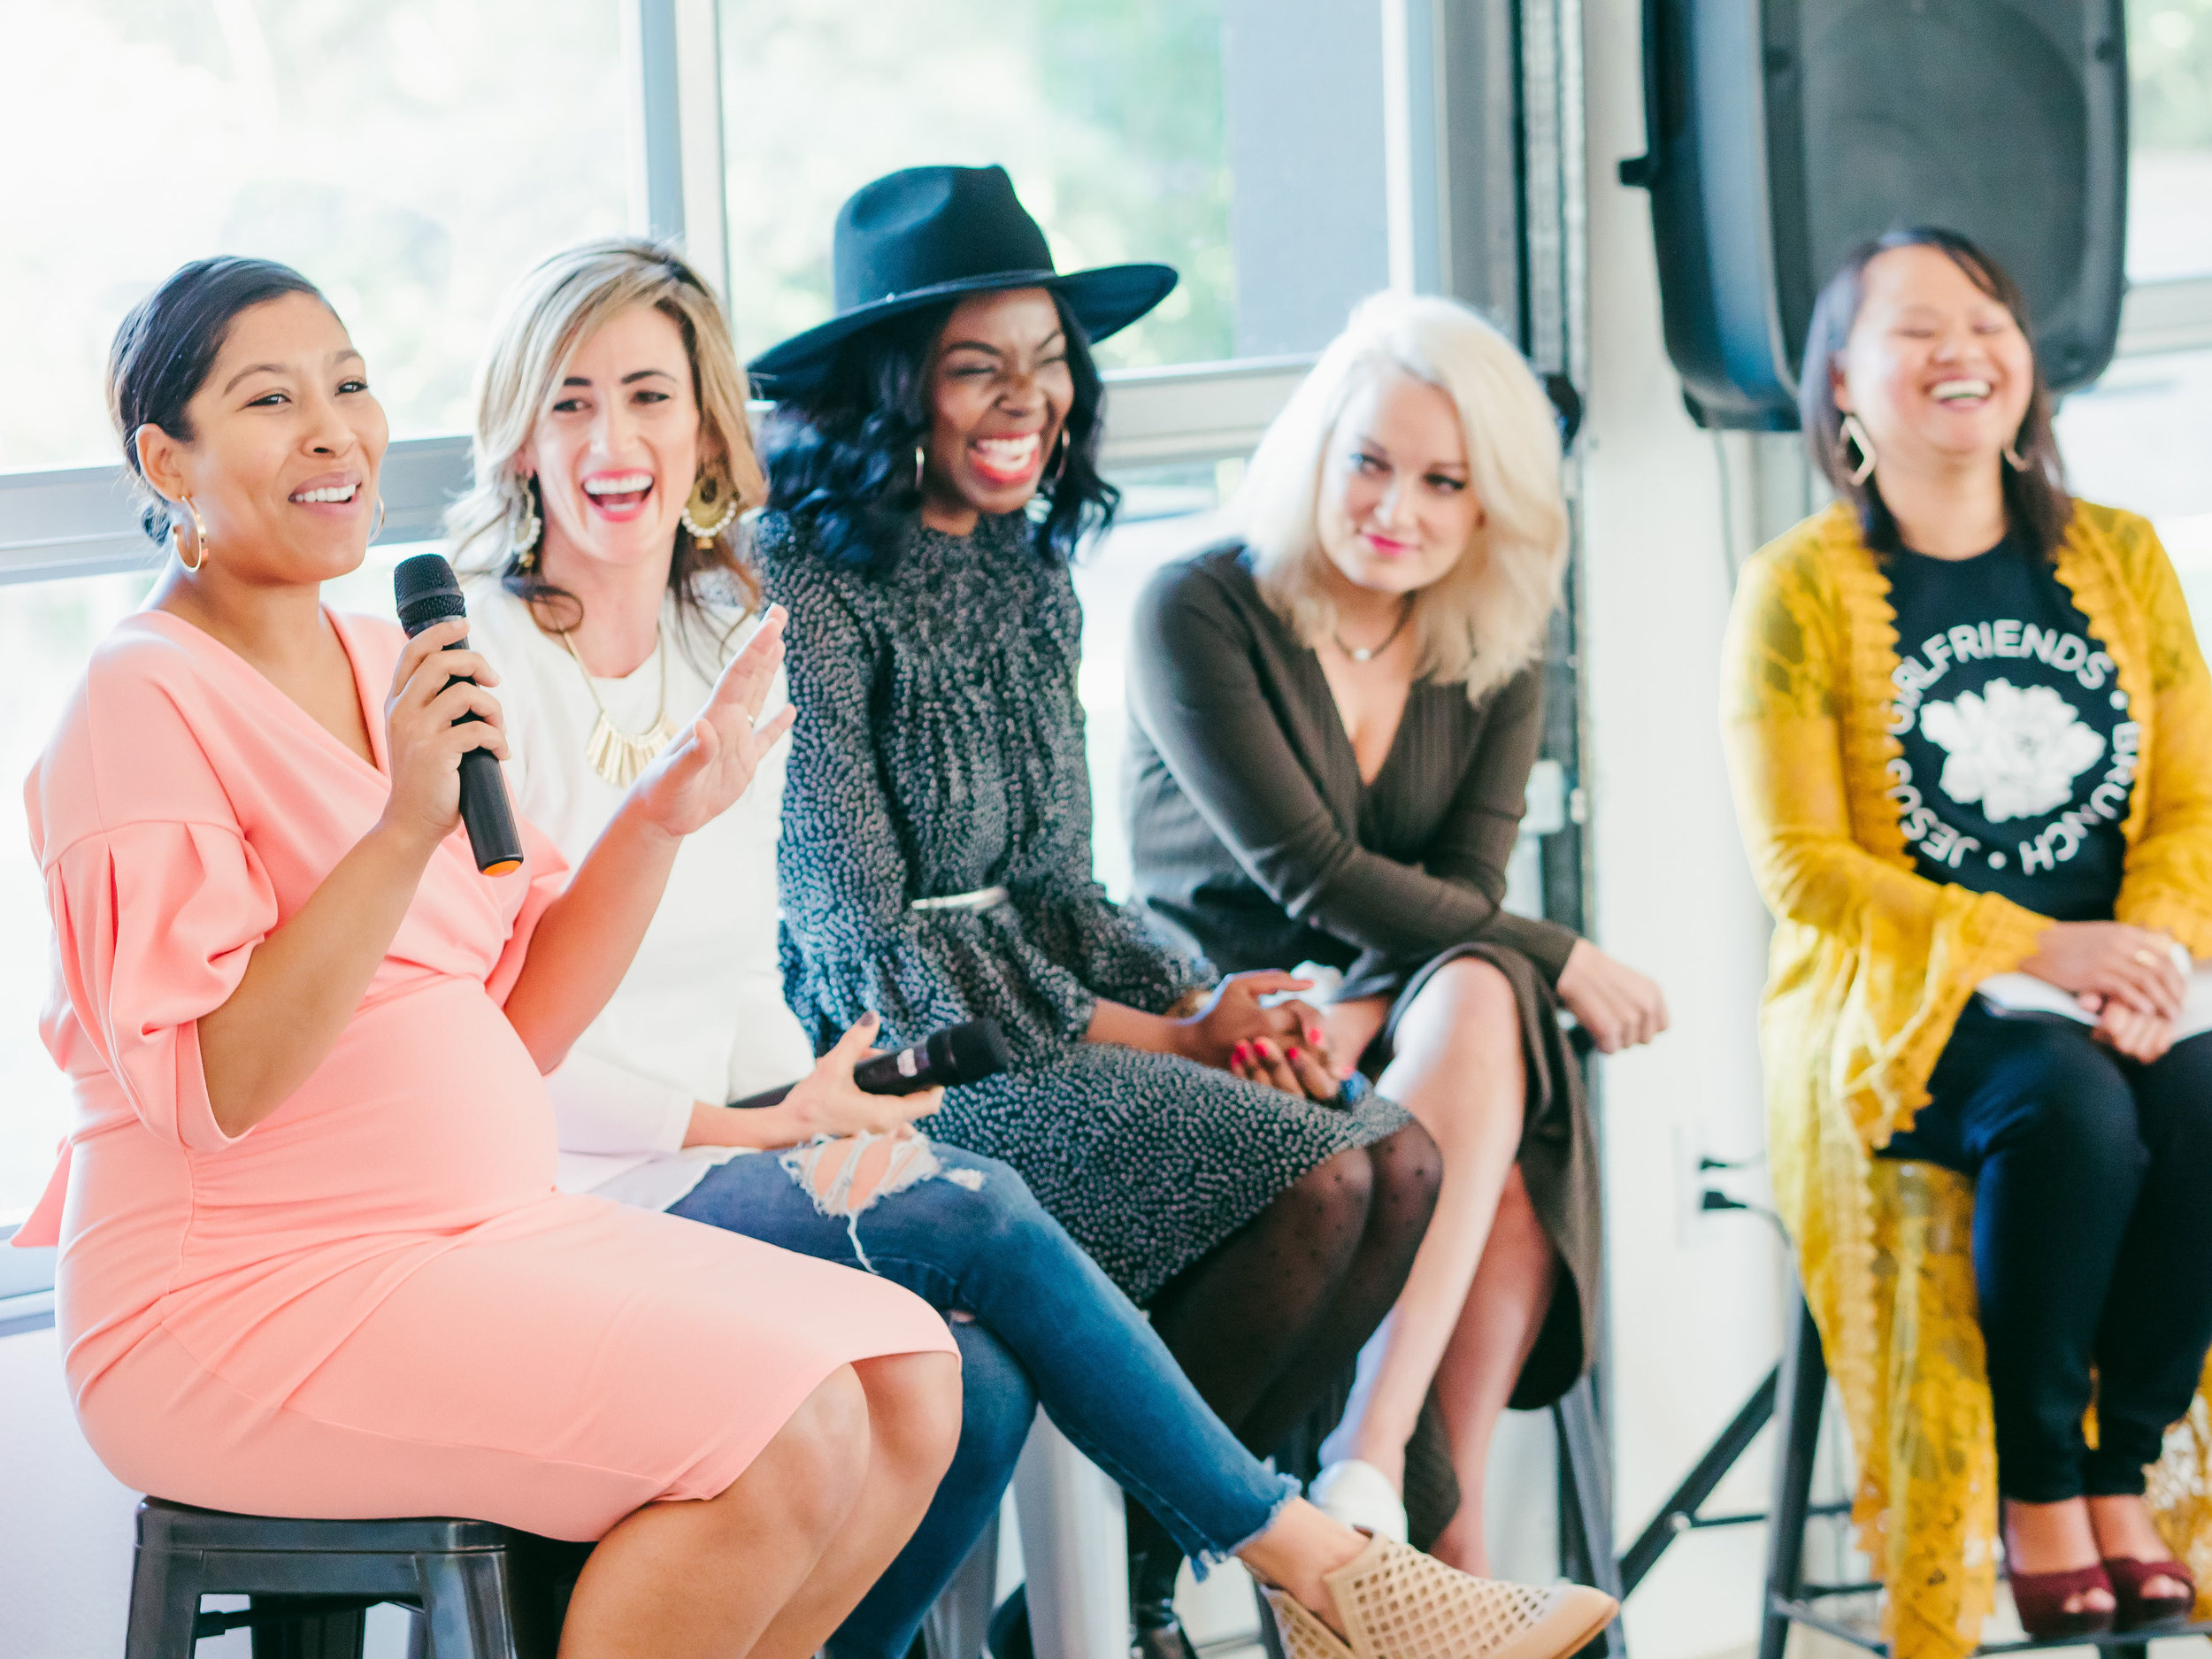 And laugh some more….. Our Faith panel was full of encouragement.  Samnang Howard- @thatsamsway  Krystle Barrington-  www.krystlebarrington.com   Kendra Stanton-  www.citizensofbeauty.com   Lindsey Crouch-  www.guiltlessgoodies.com   Jade Shaw-  www.jadeshawonline.com